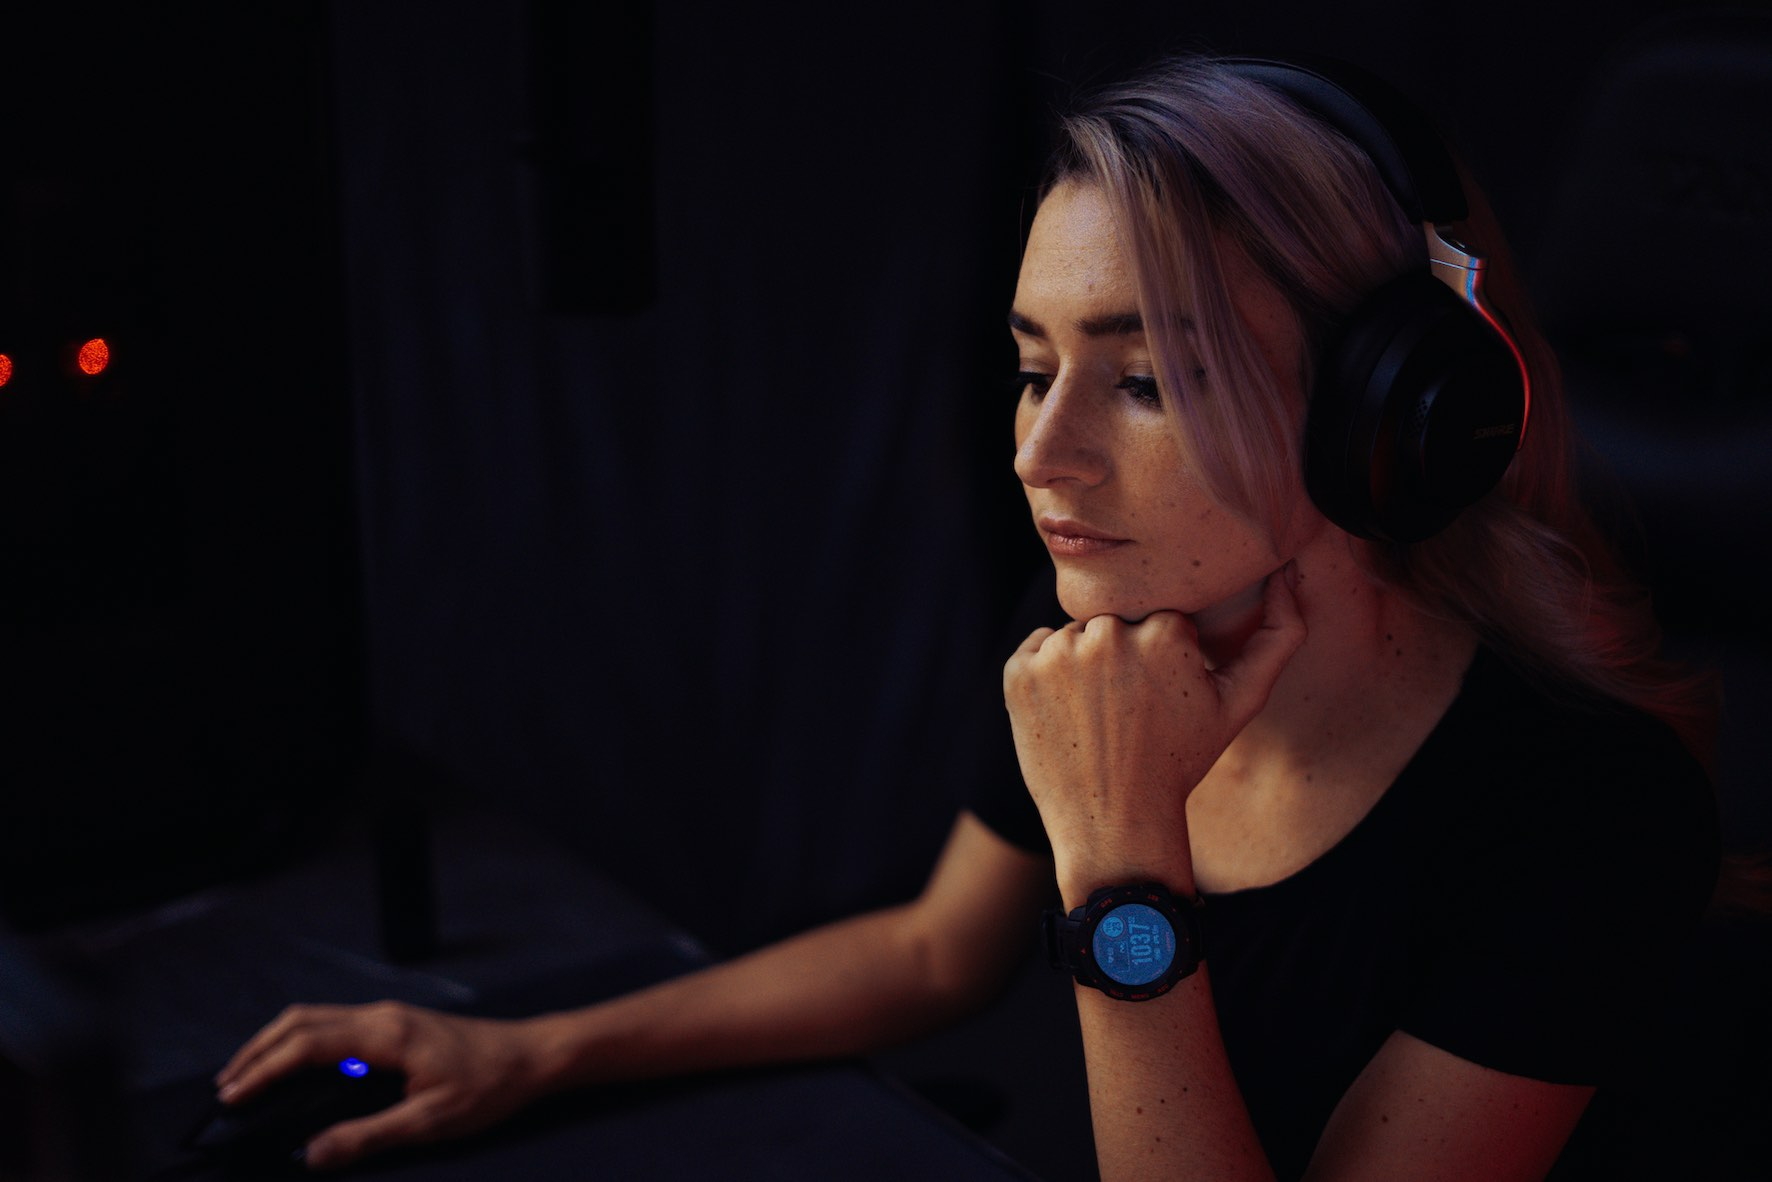 Gamer and Twitch streamer Chloe Geraghty review the Garmin Instinct Esports smartwatch